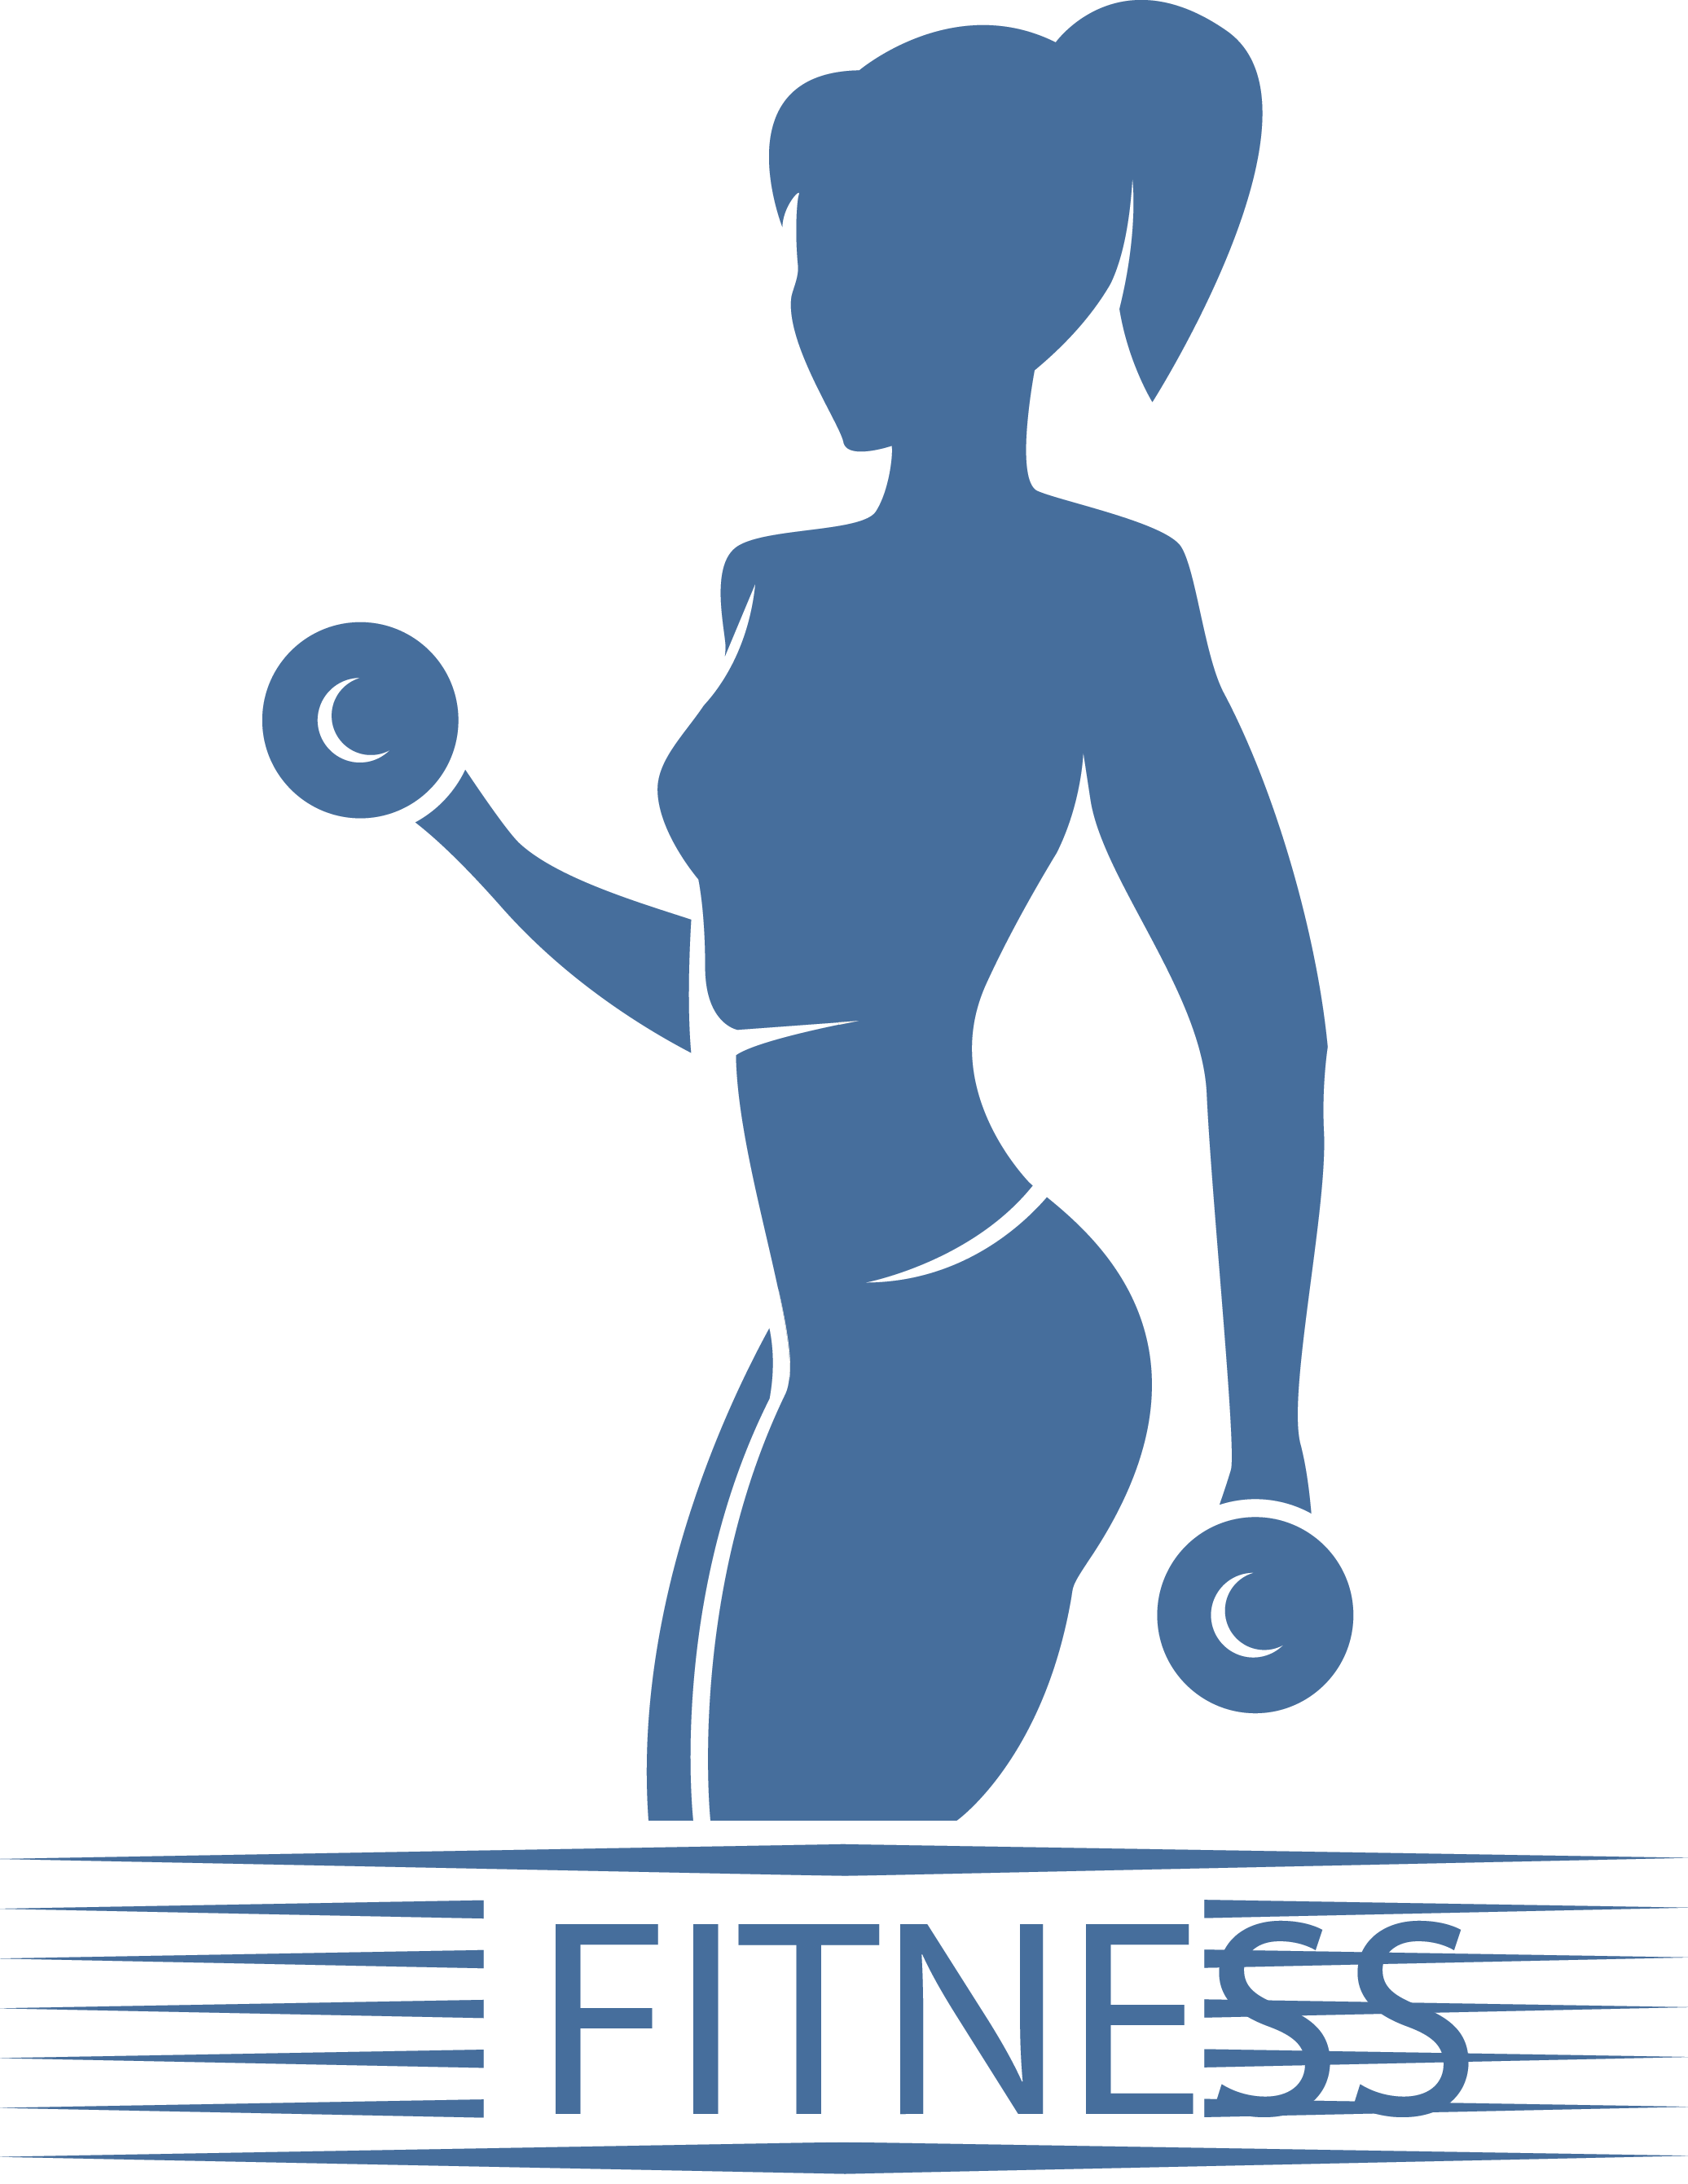 Exercising clipart fitness trainer. Physical exercise centre personal